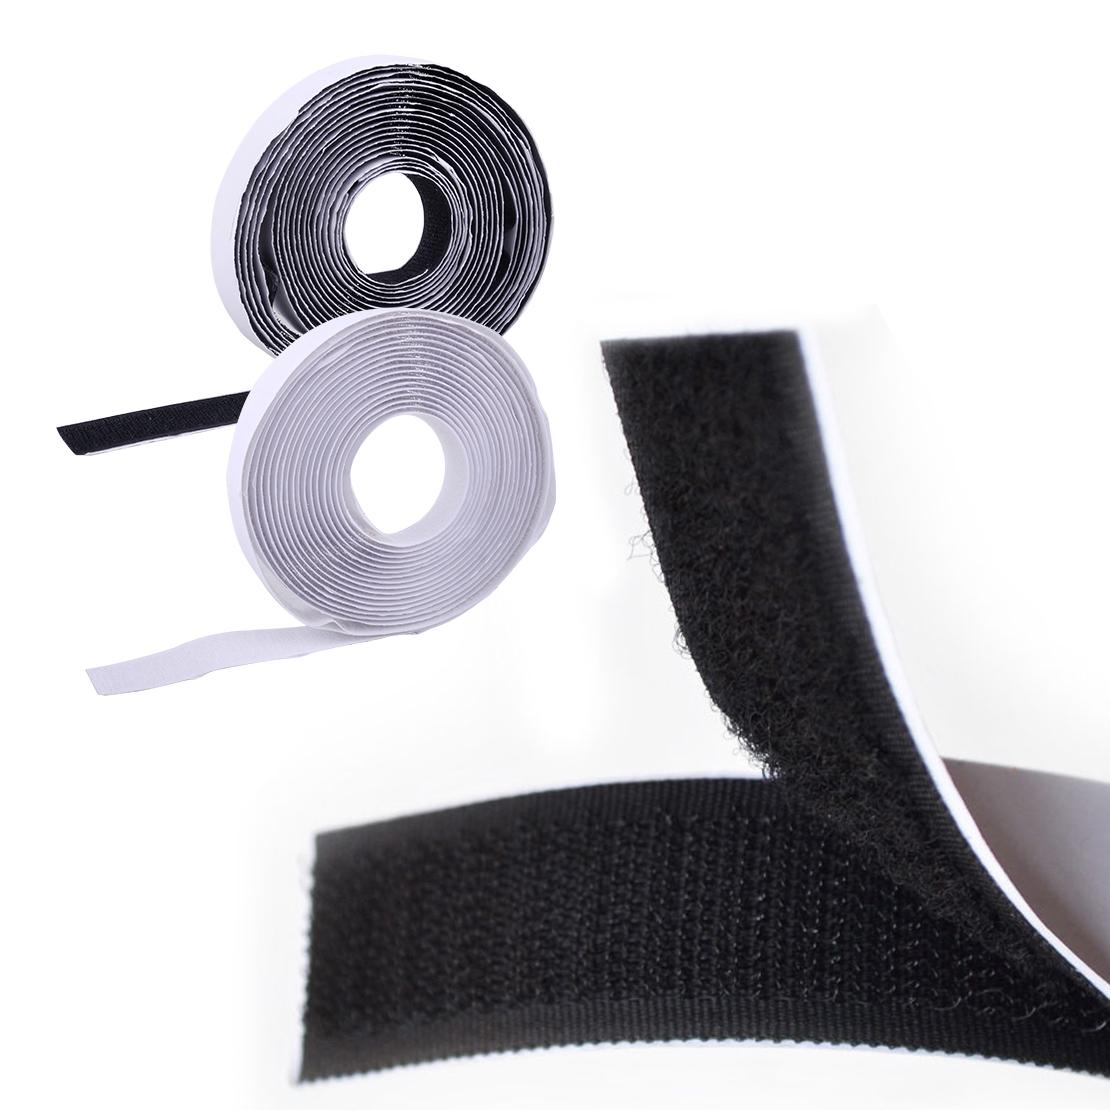 5M Sale Nylon Strong Sticky Back Self Adhesive Tape Hook and Loop 20mm Fastener